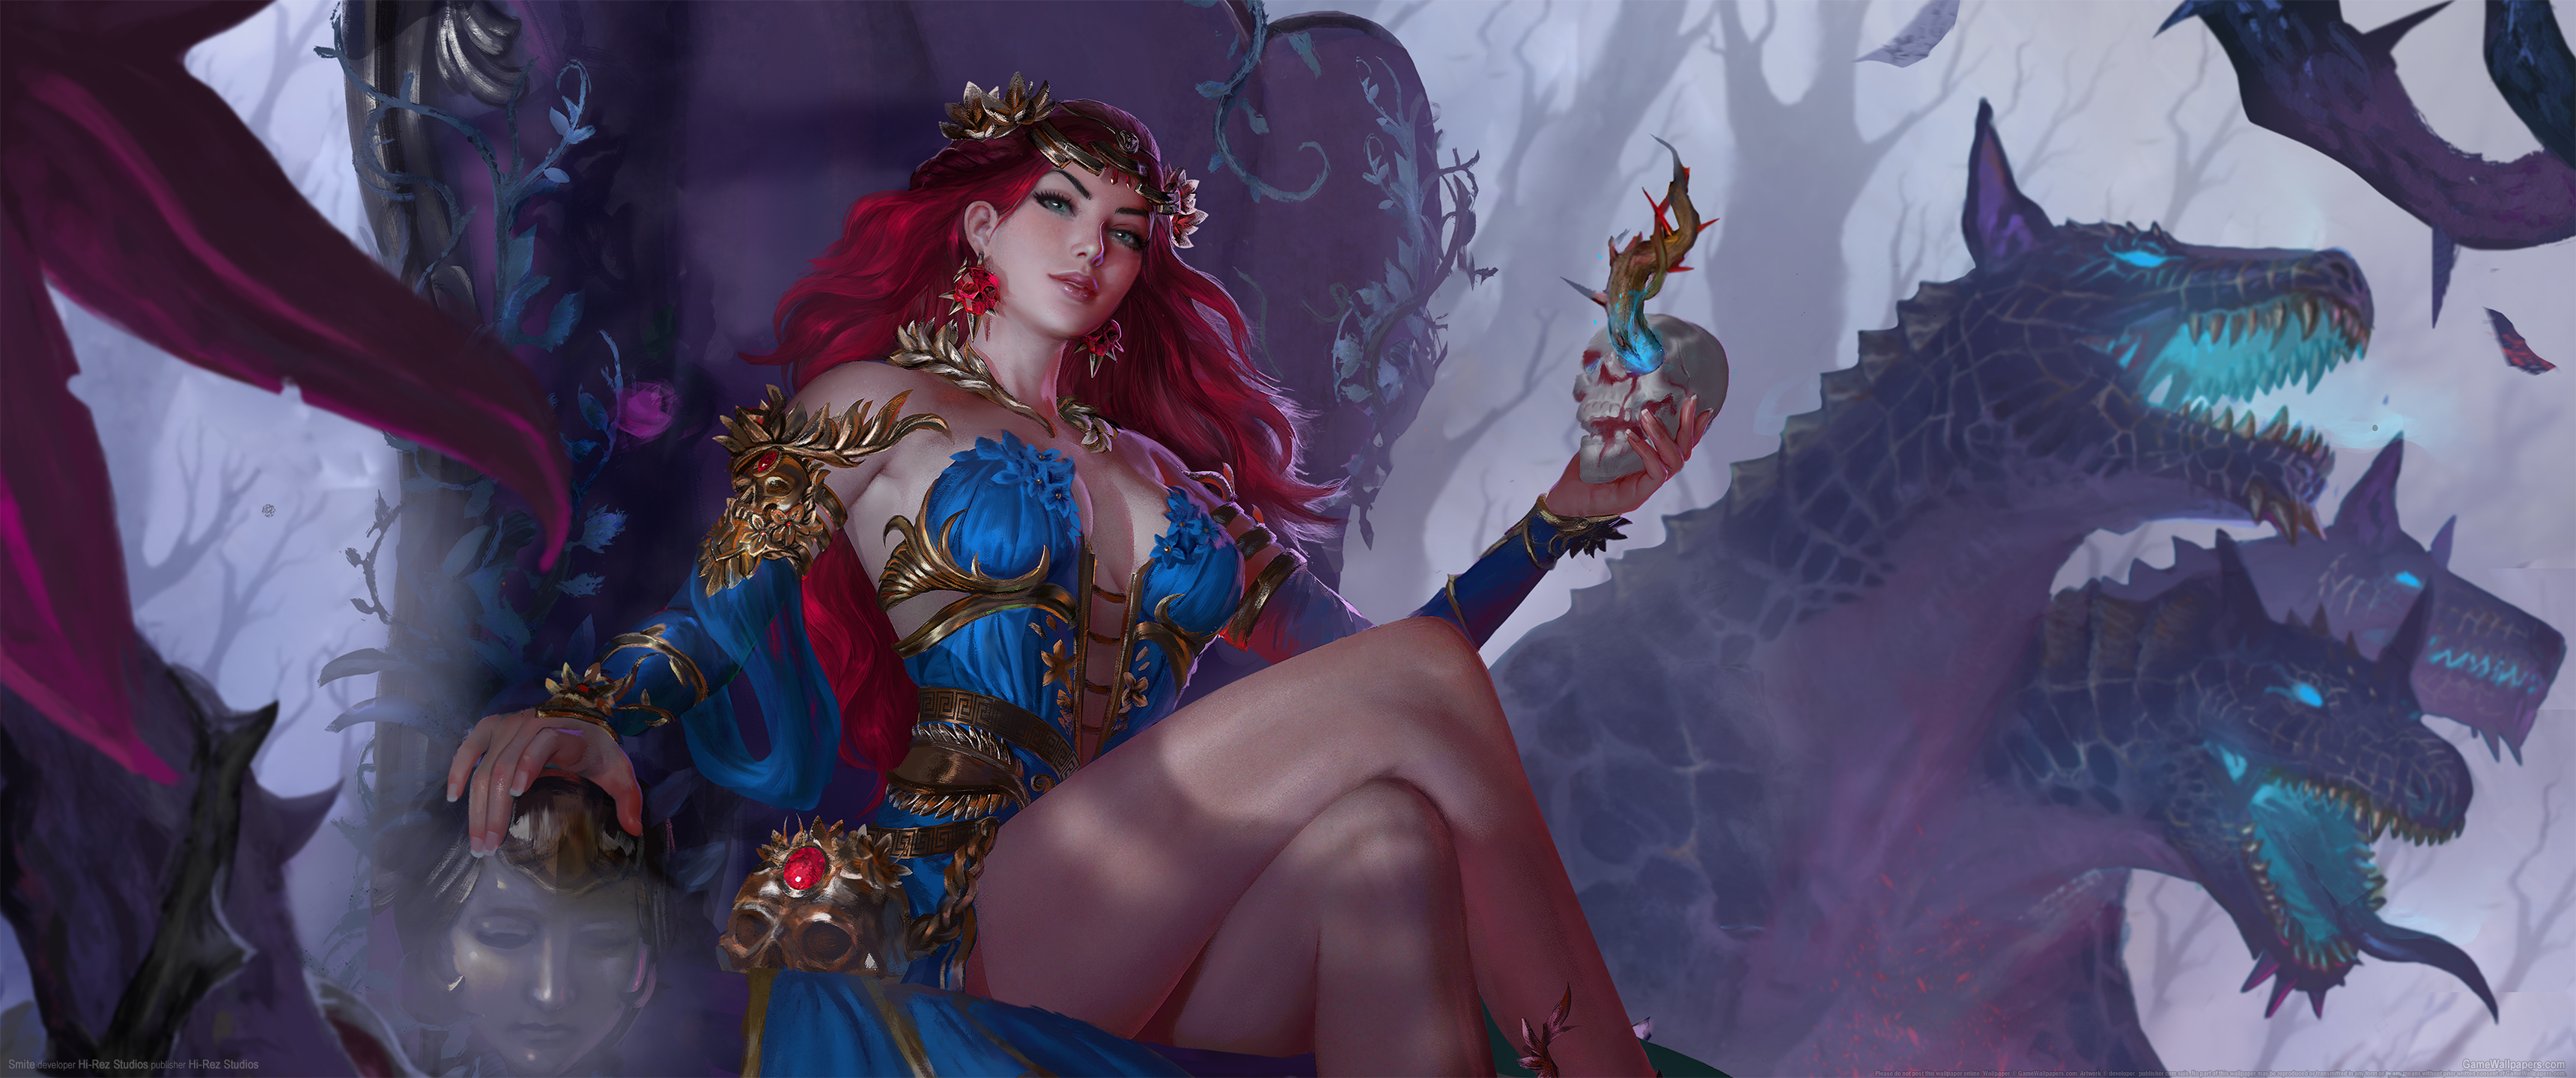 Smite 3440x1440 wallpaper or background 18